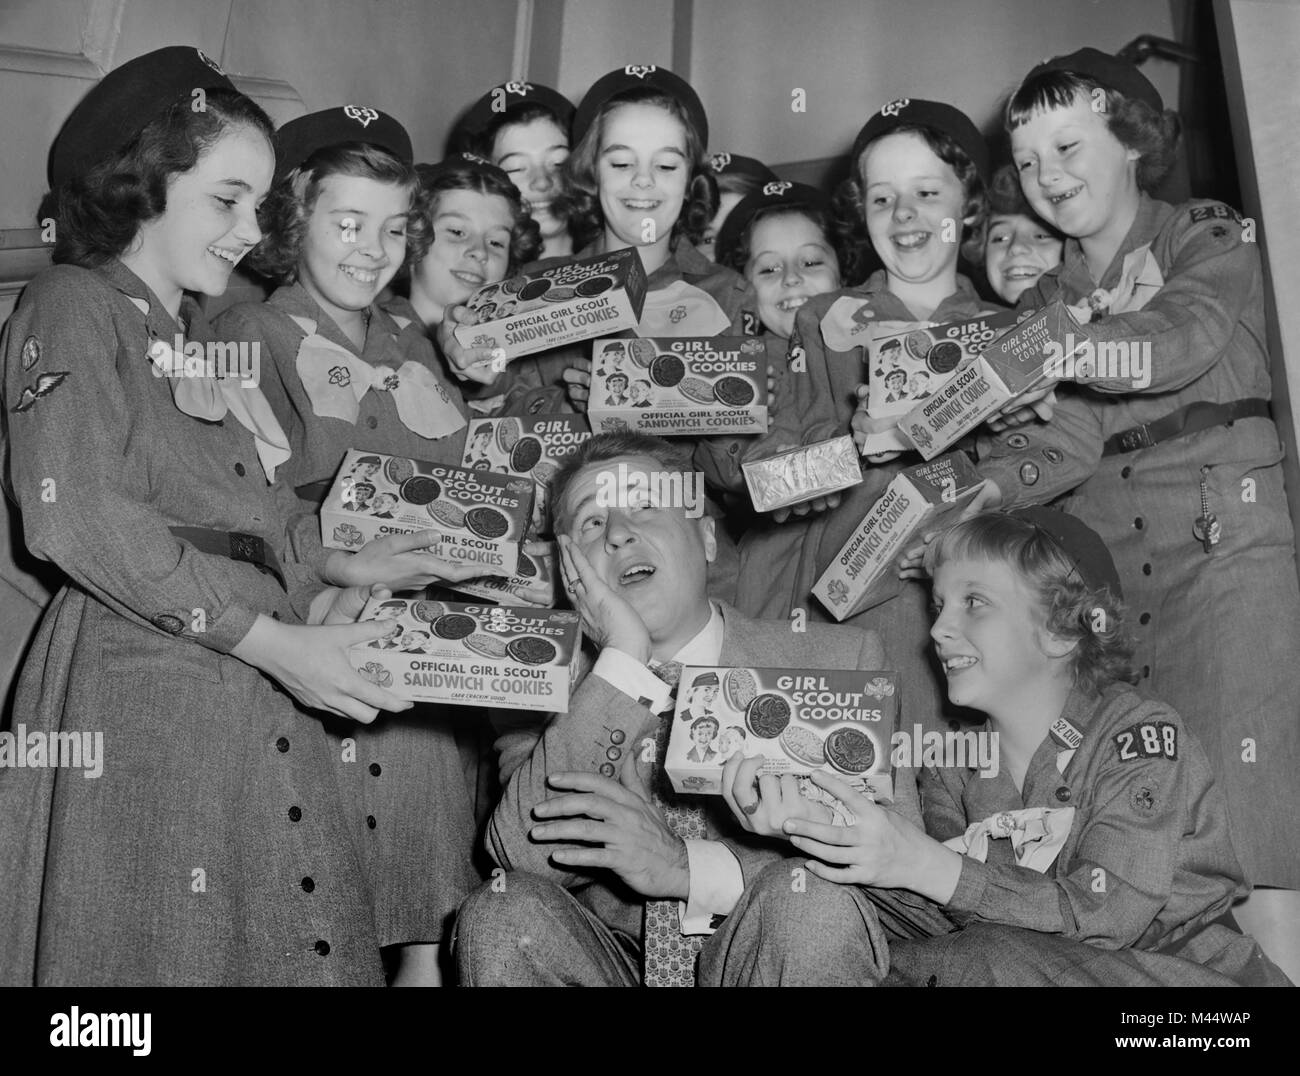 Comedian George Gobel is the target of multiple sales pitch efforts by a group of Chicago area girl scouts in the Stock Photo